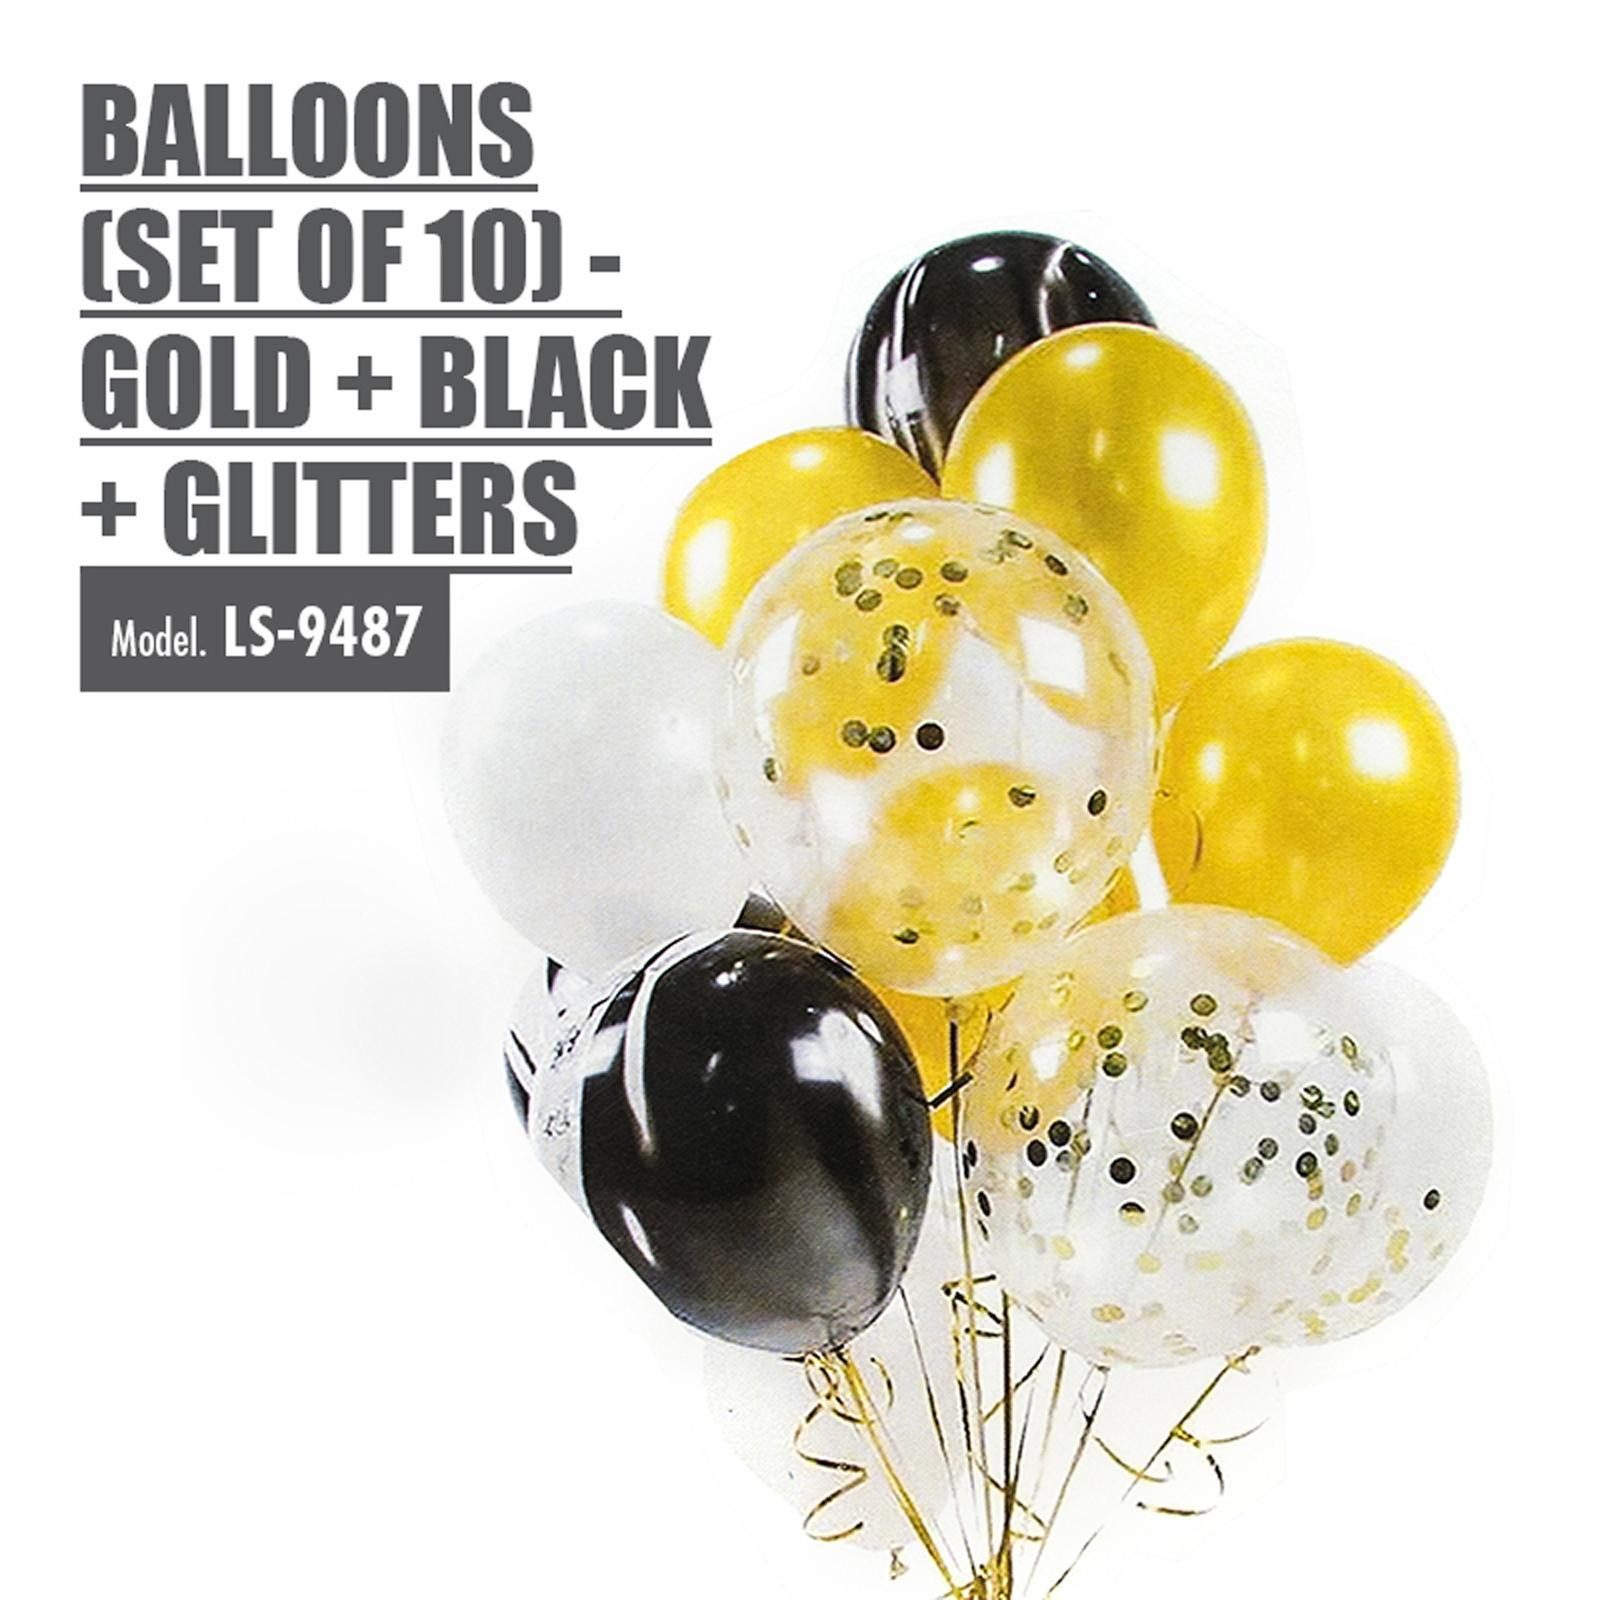 HOUZE Balloons (Set Of 10) - Gold + Black + Glitters